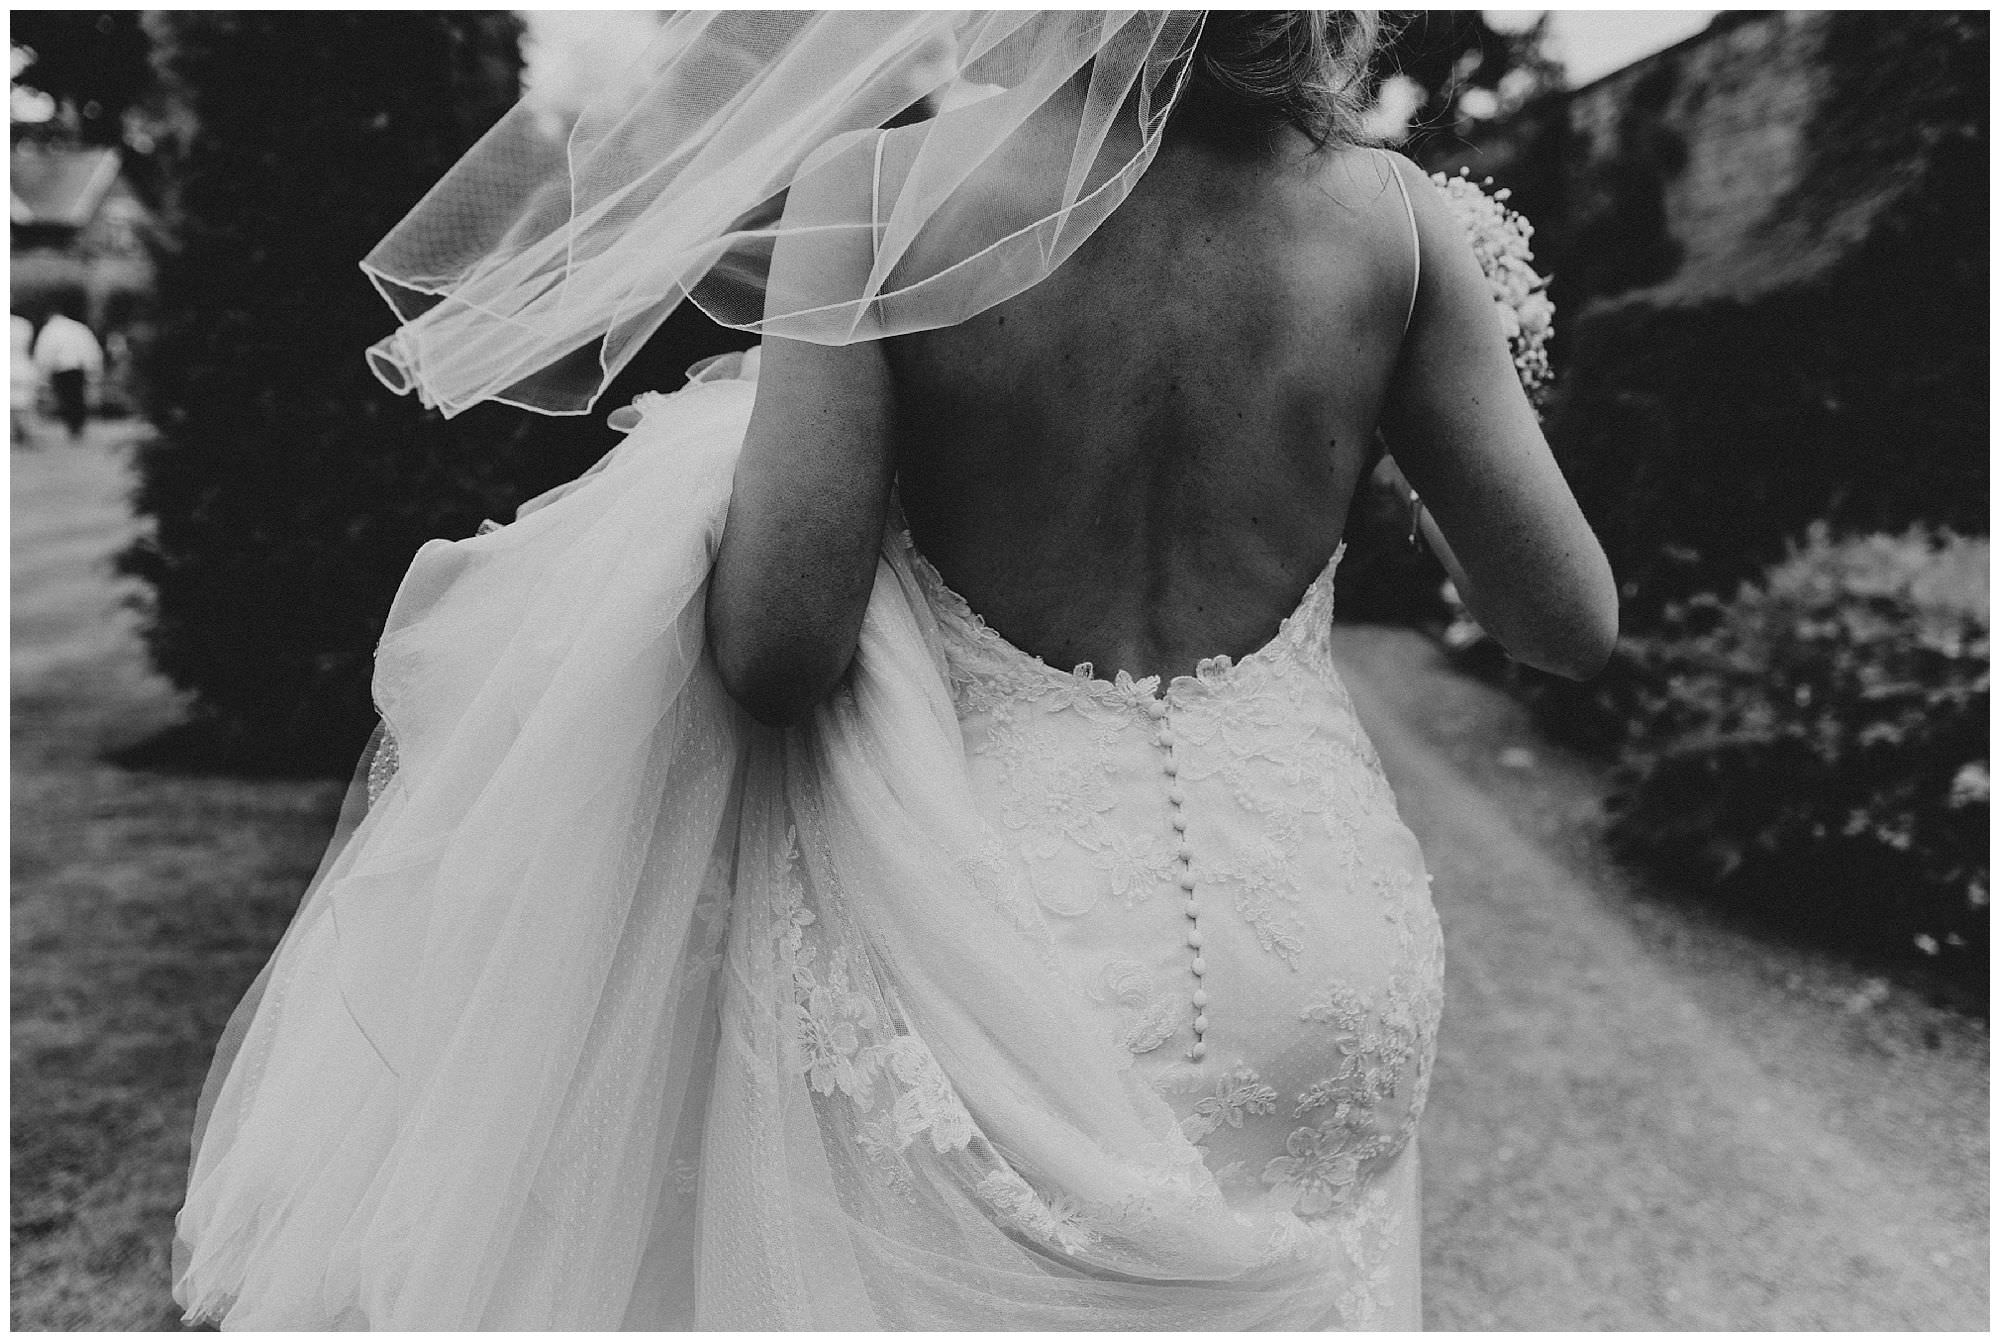 A brides bare back at her traditional English wedding at Combermere Abbey